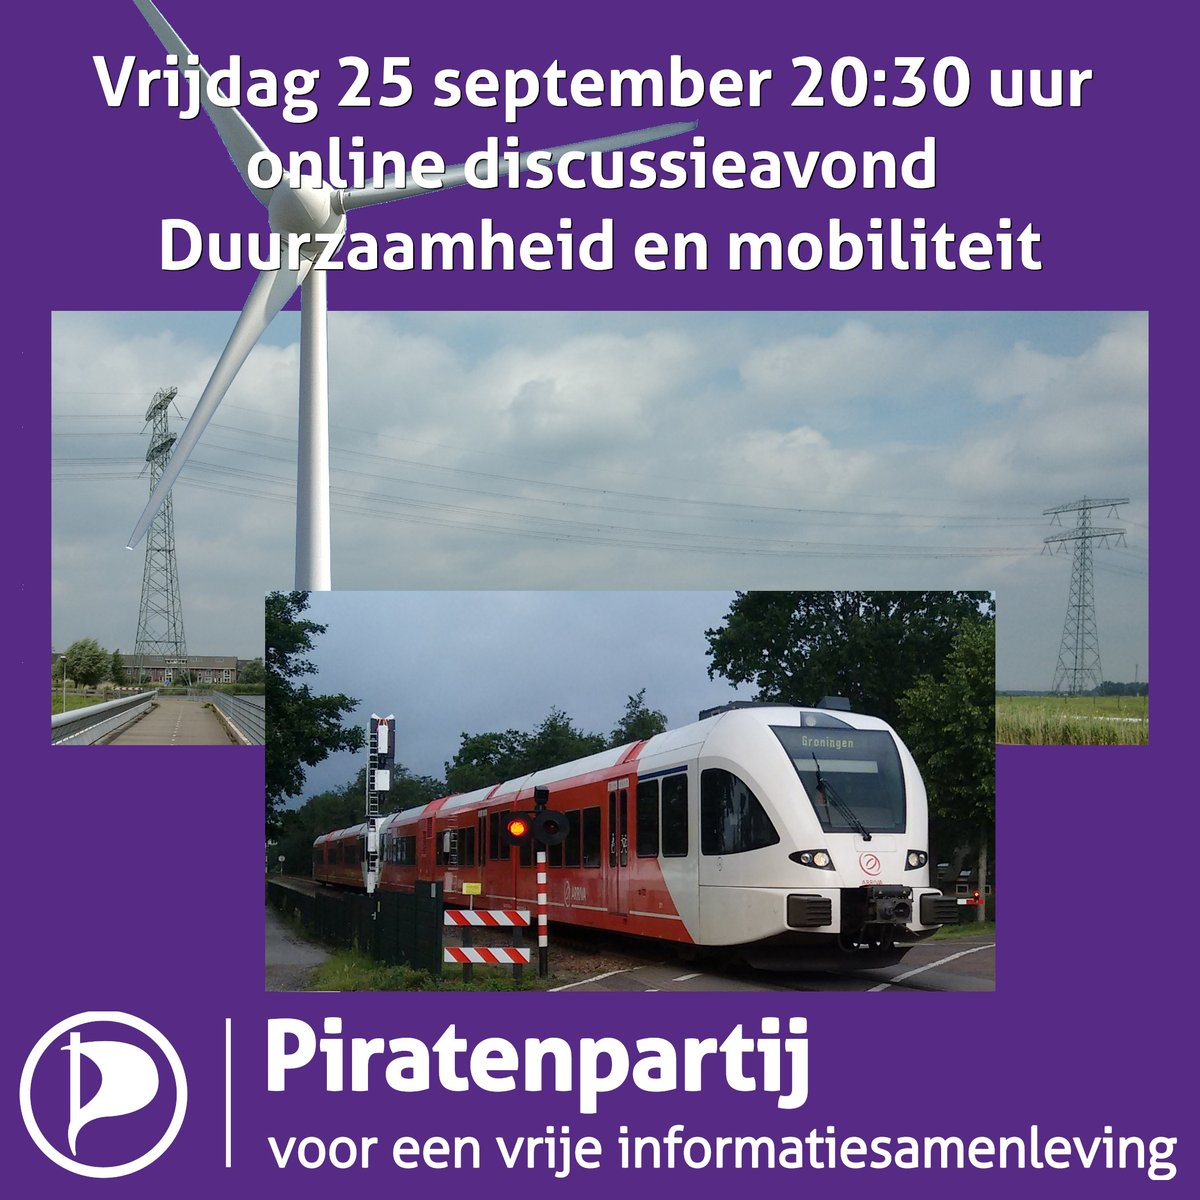 Vrijdag 25 september 20:30 uur online discussieavond over Duurzaamheid en mobiliteit  #discussie #piratenpartij #piraten #duurzaamheid #mobiliteit  https://t.co/yxLgXUxsdR https://t.co/qRzDY3Zm9v